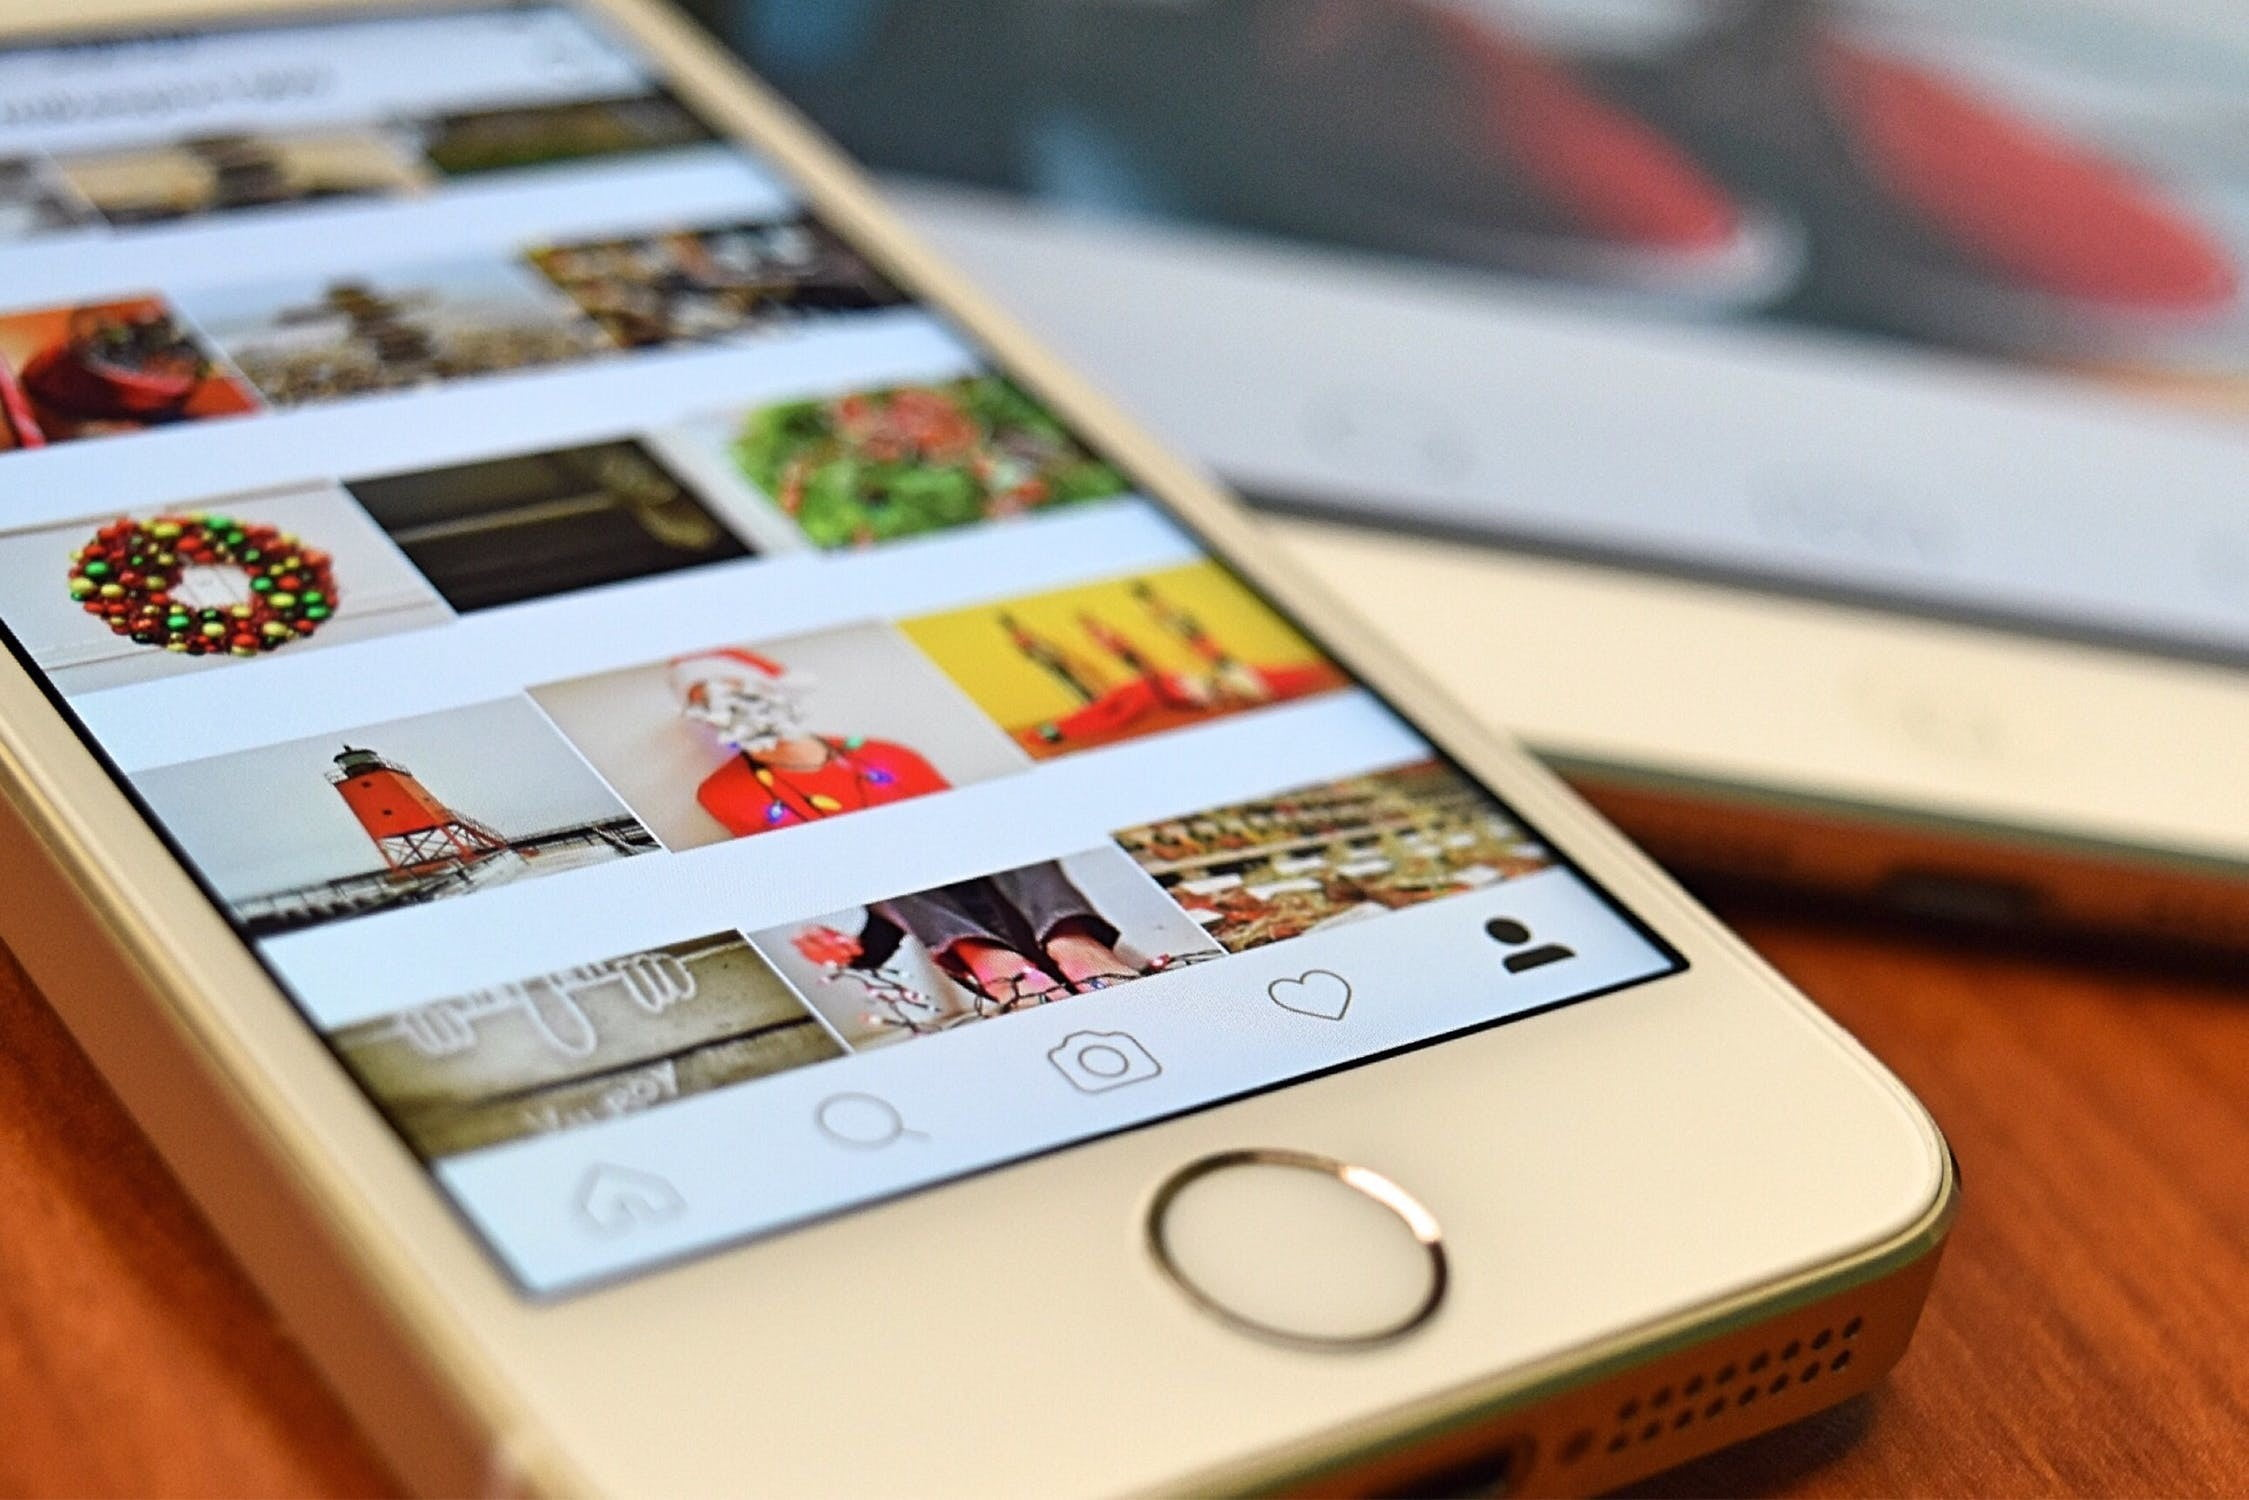 Instagram restricts influencer posts for diet and cosmetic surgery products